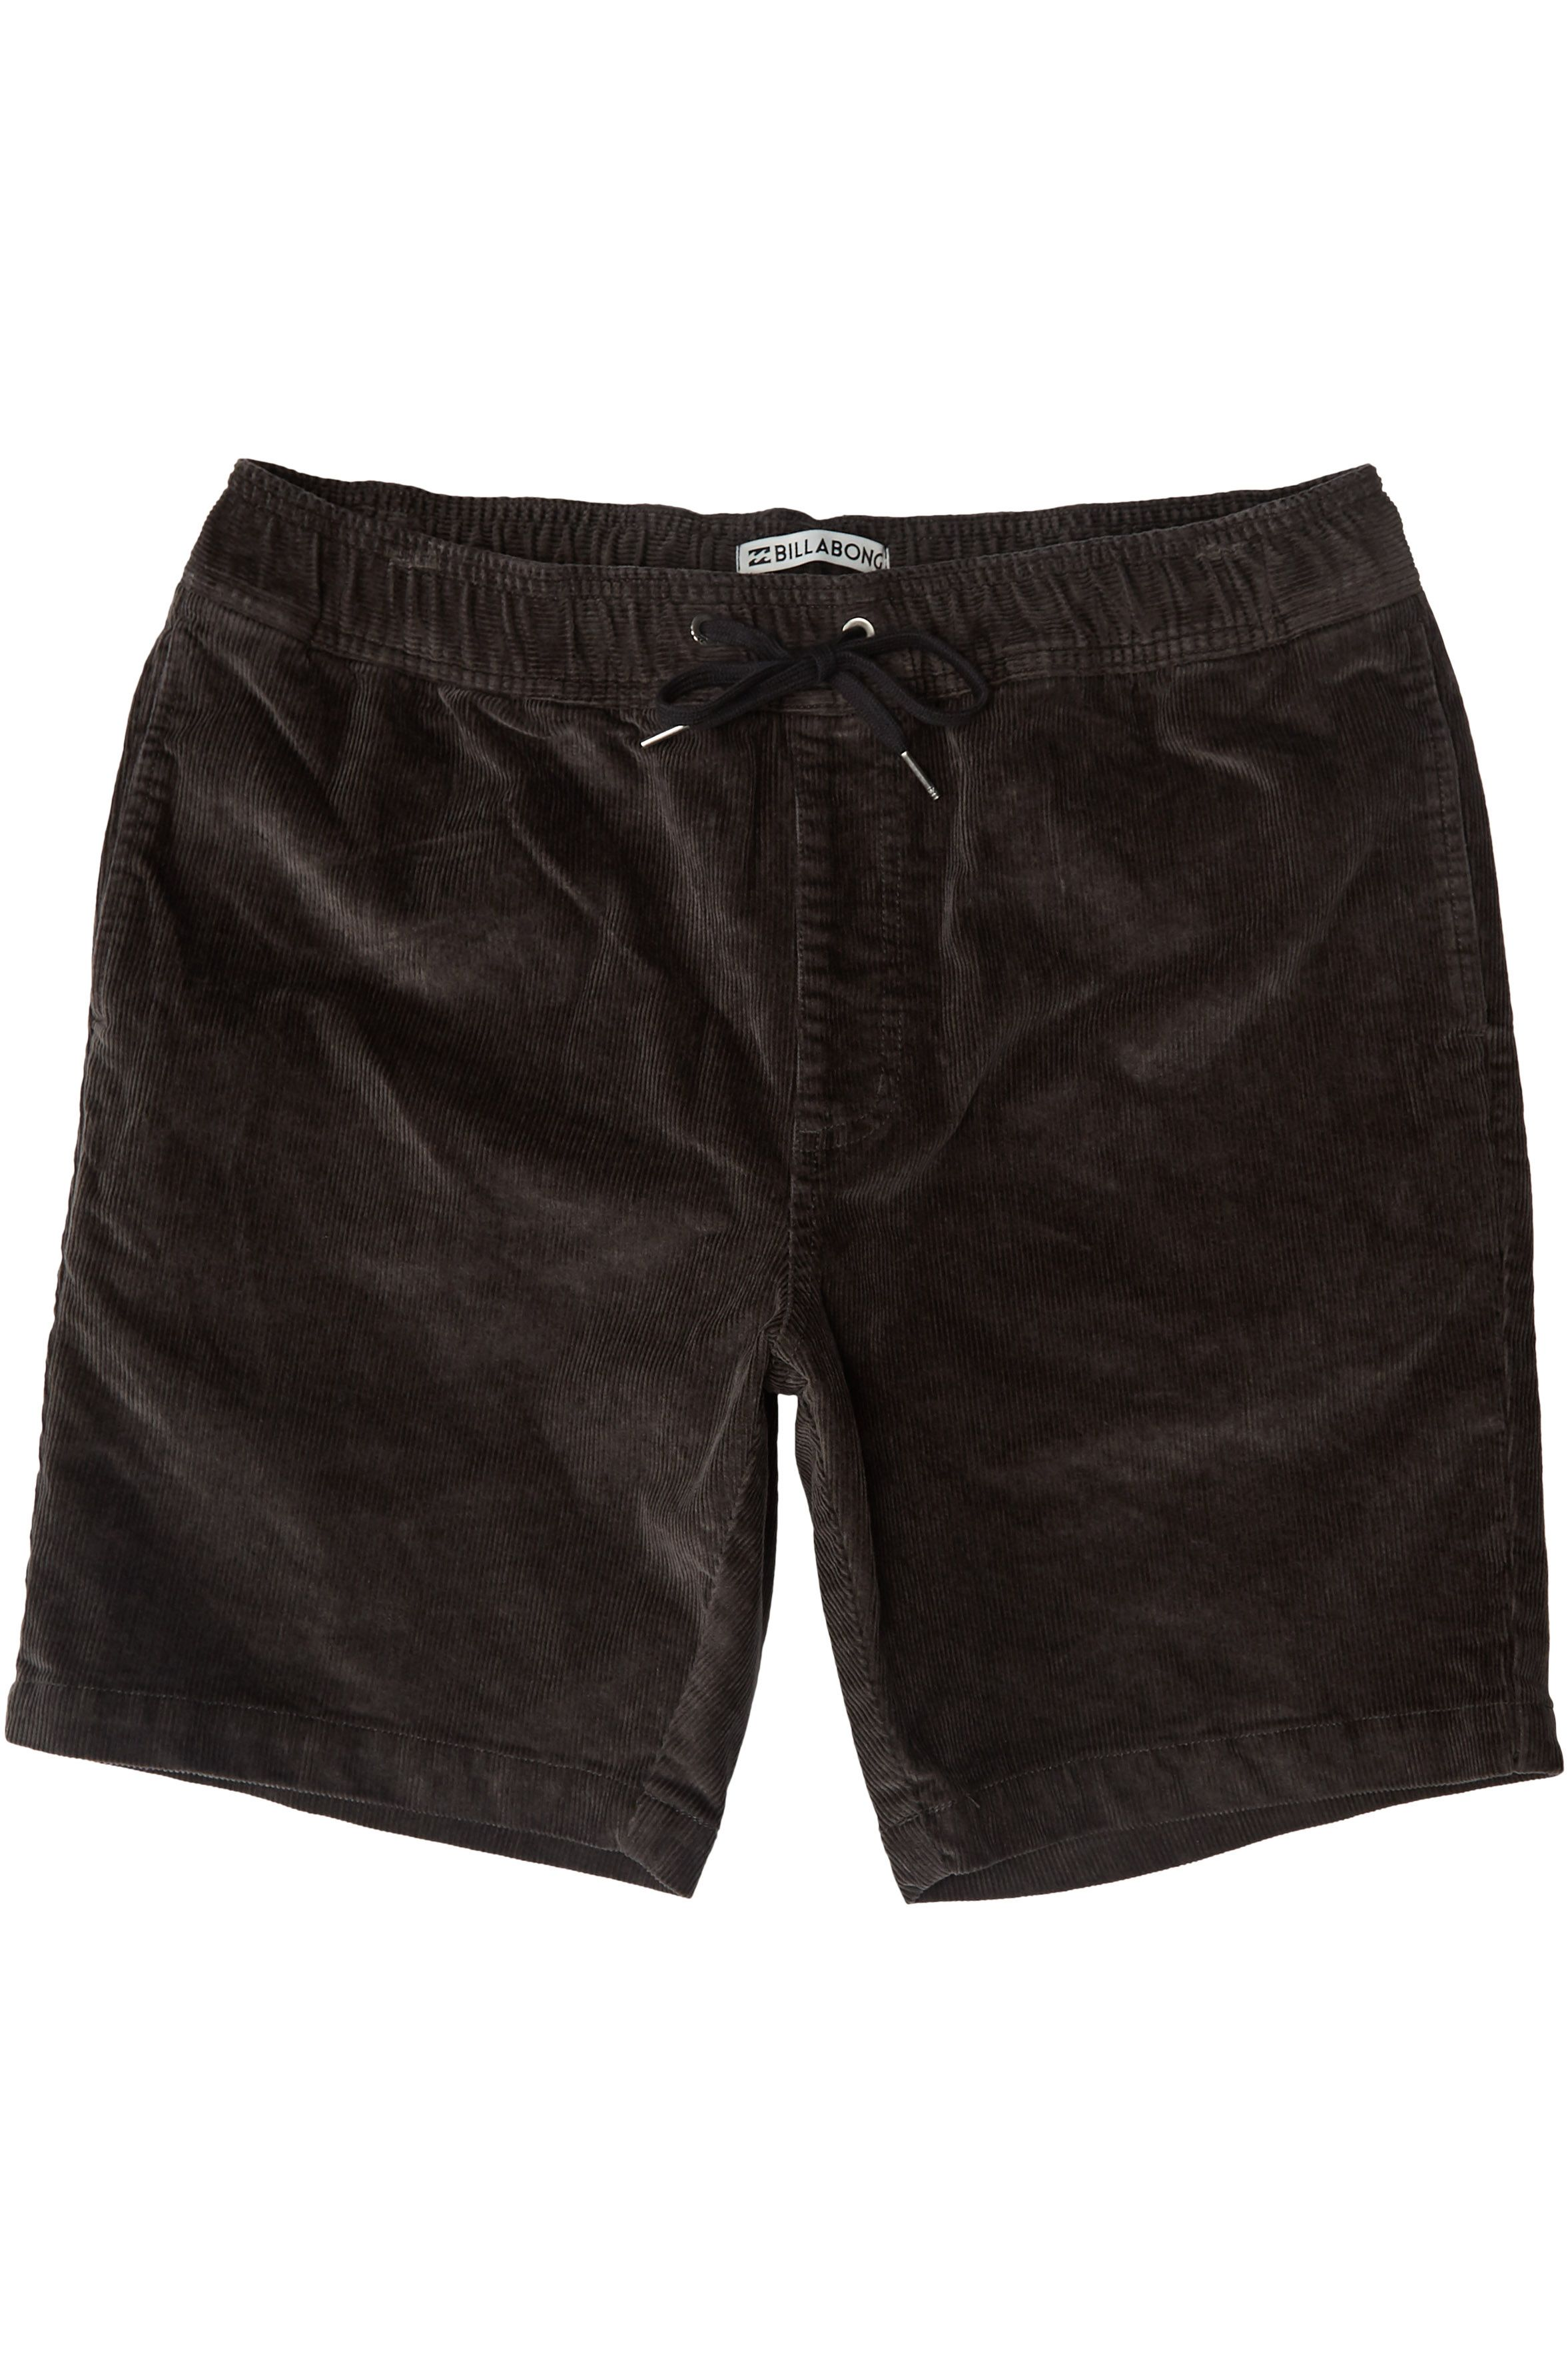 Walkshorts Billabong LARRY LAYBACK CORD Raven